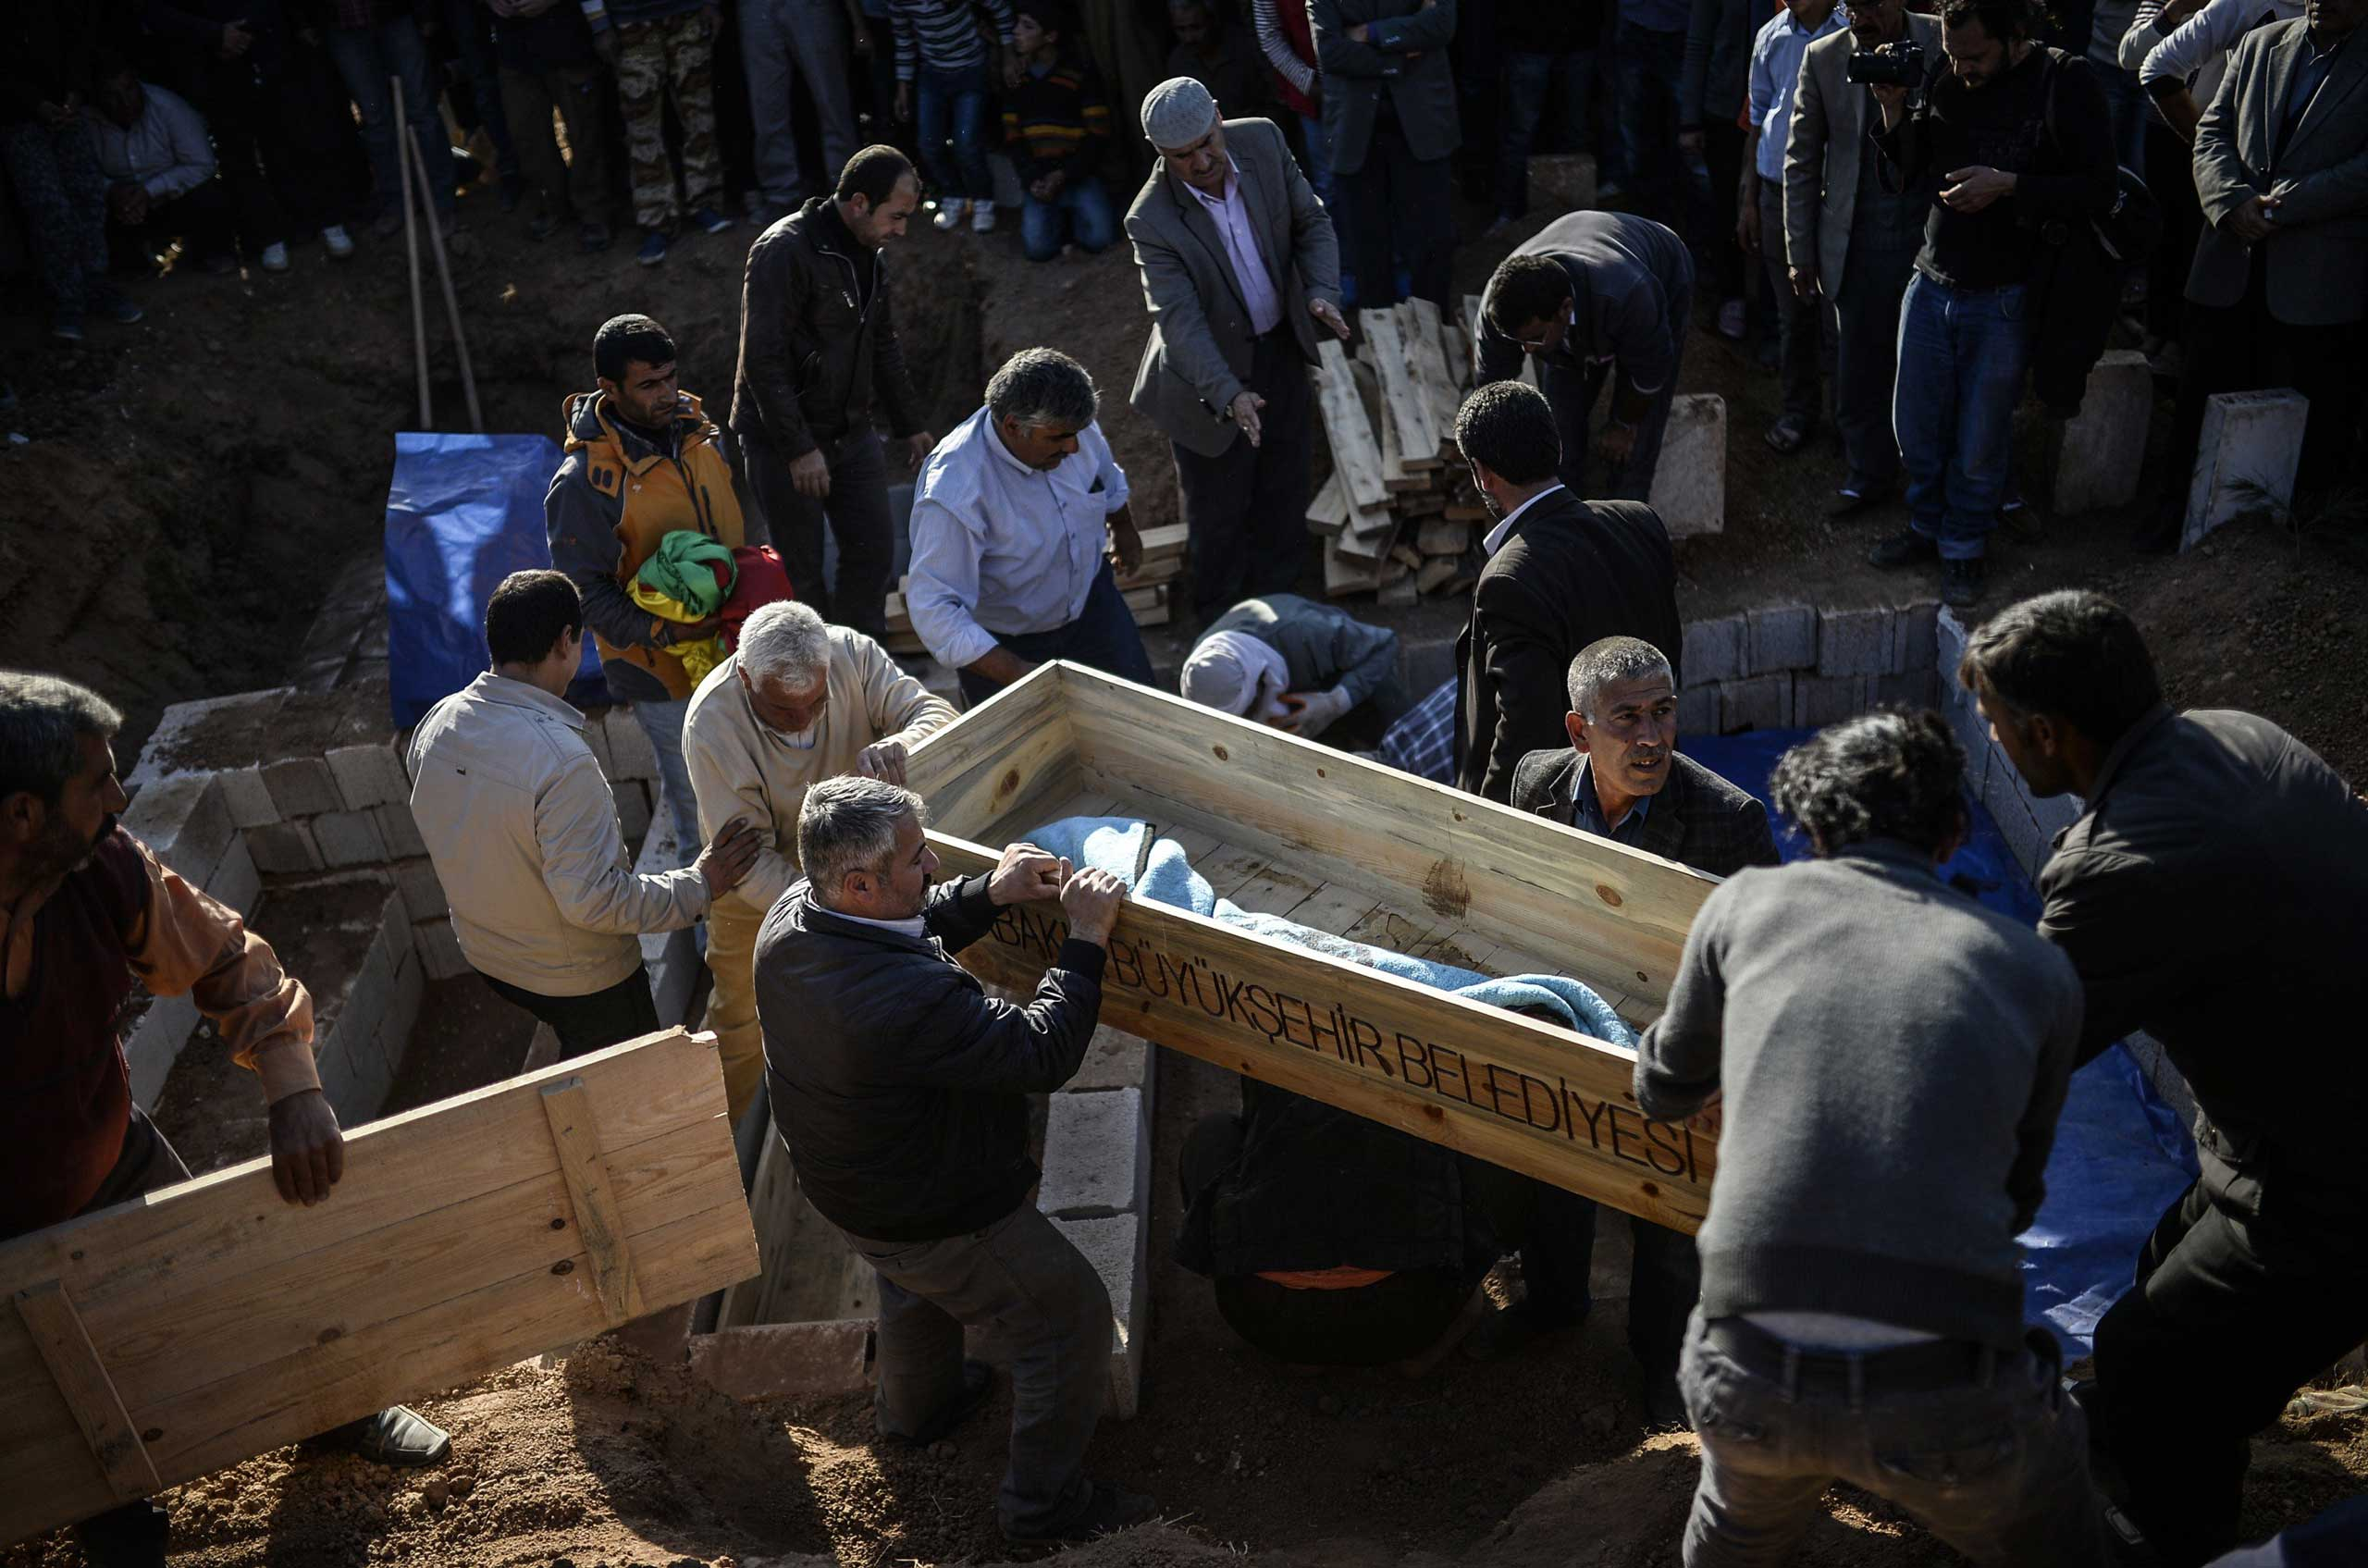 Oct. 23, 2014. Men carry a coffin at a cemetery in Suruc, in the province of Sanliurfa, Turkey.